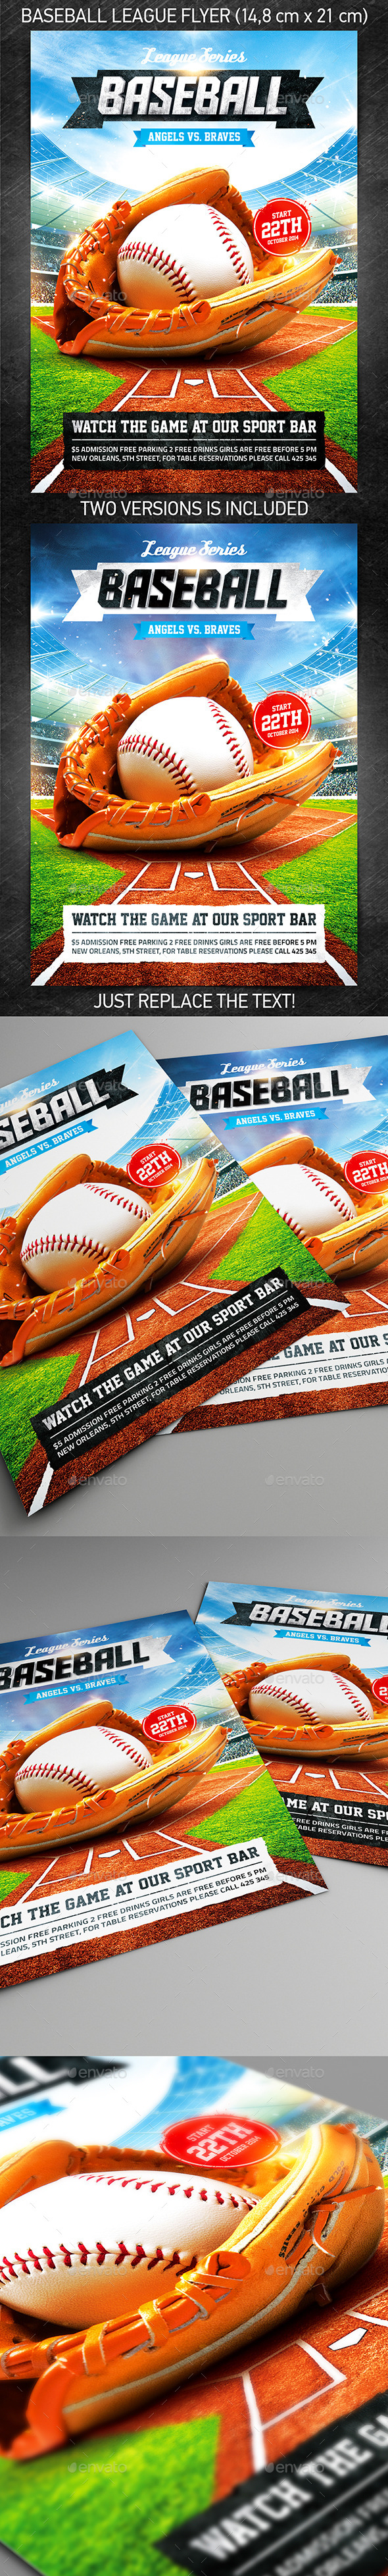 Baseball League Series Flyer - Sports Events